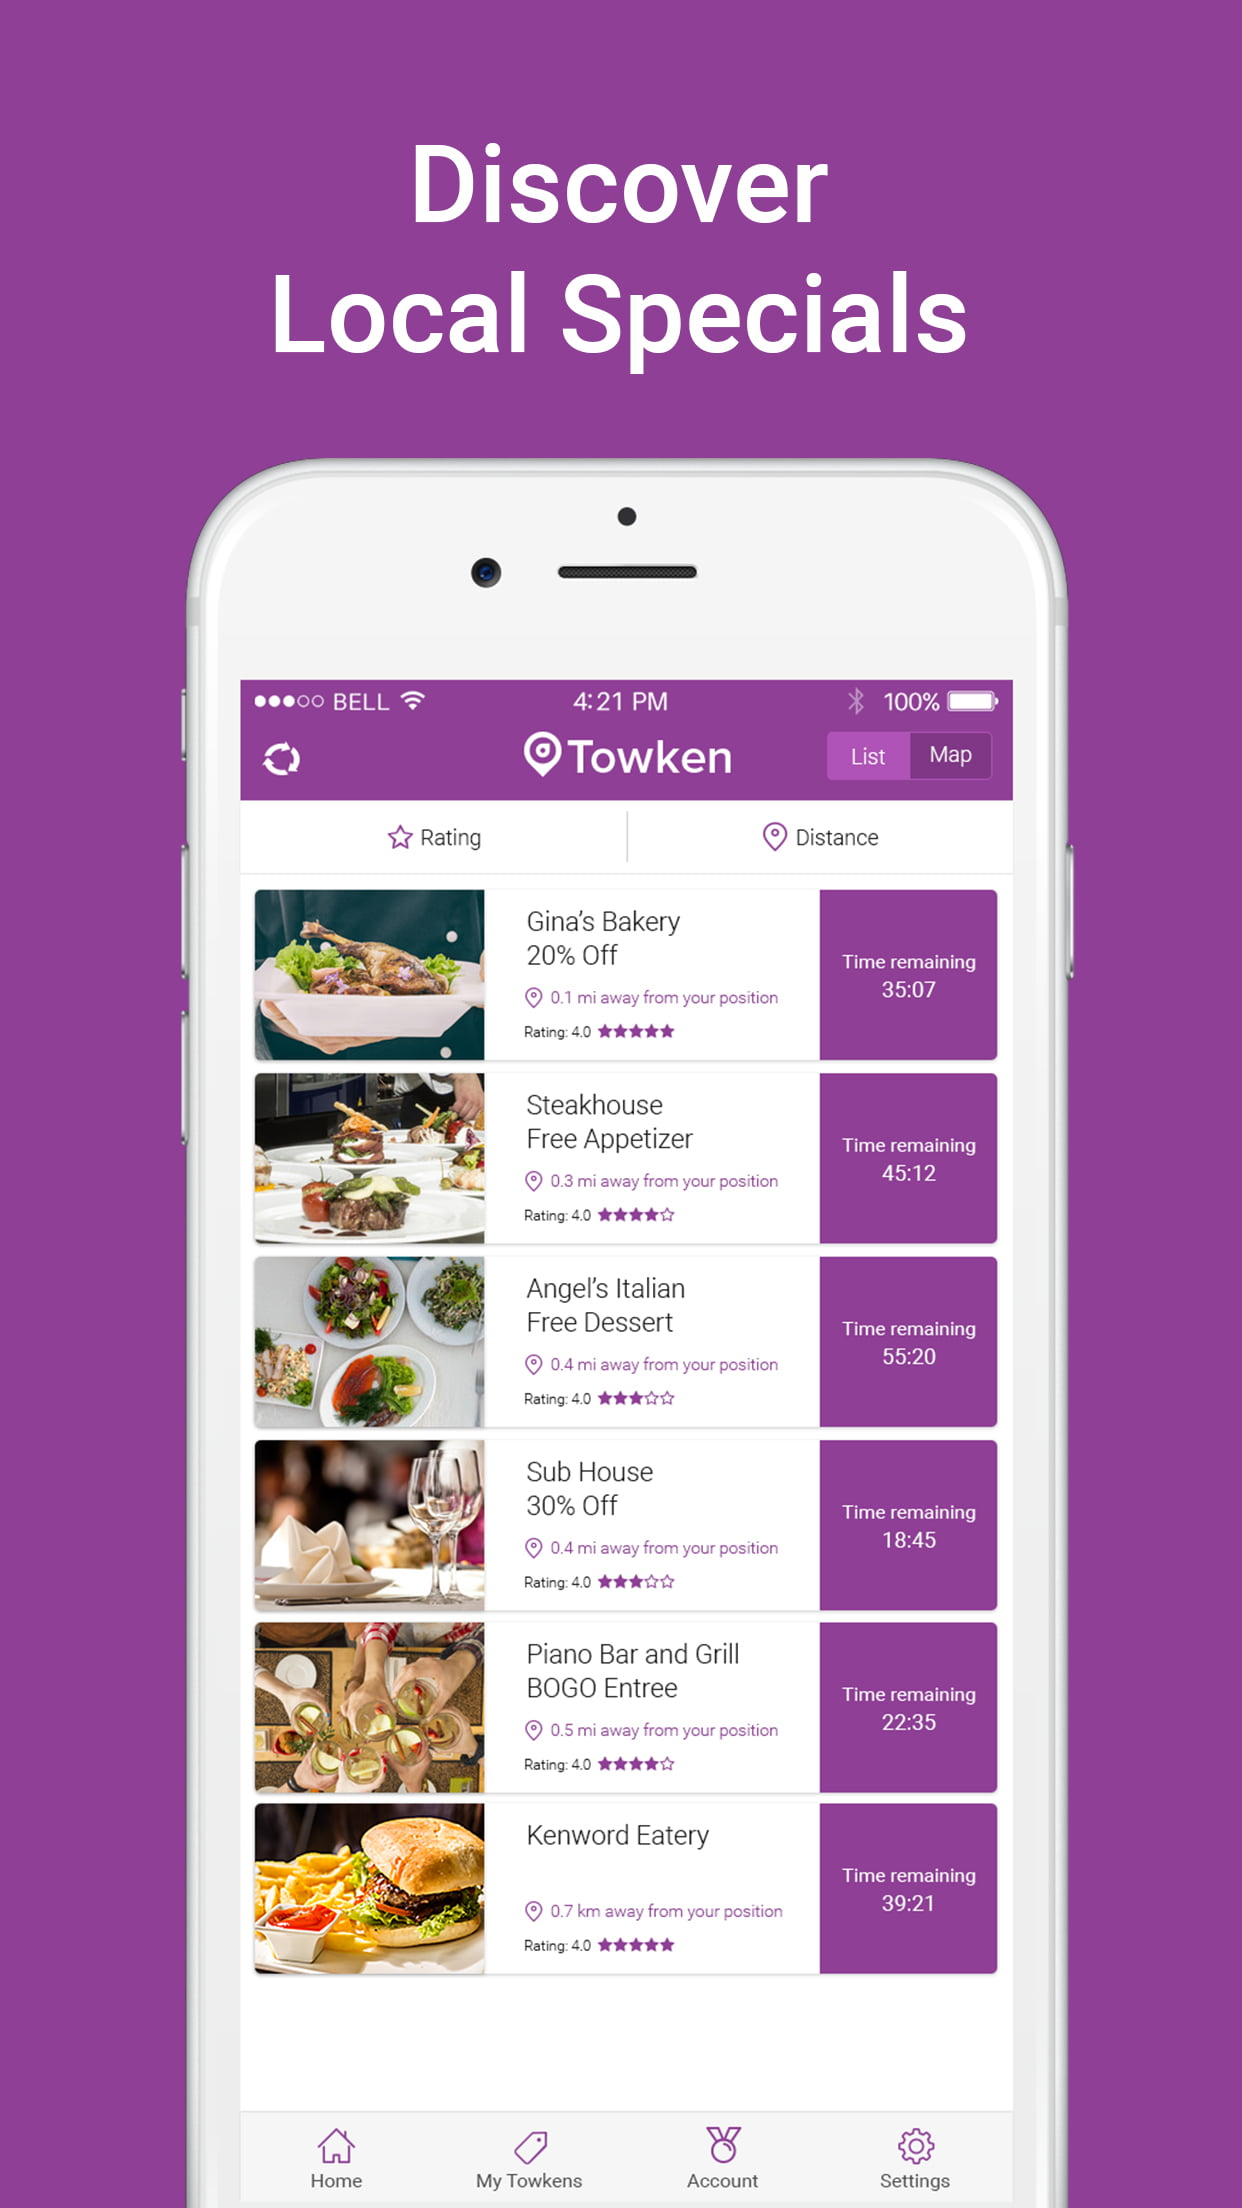 New App to Draw Customers to Discover Nearby Restaurant Specials